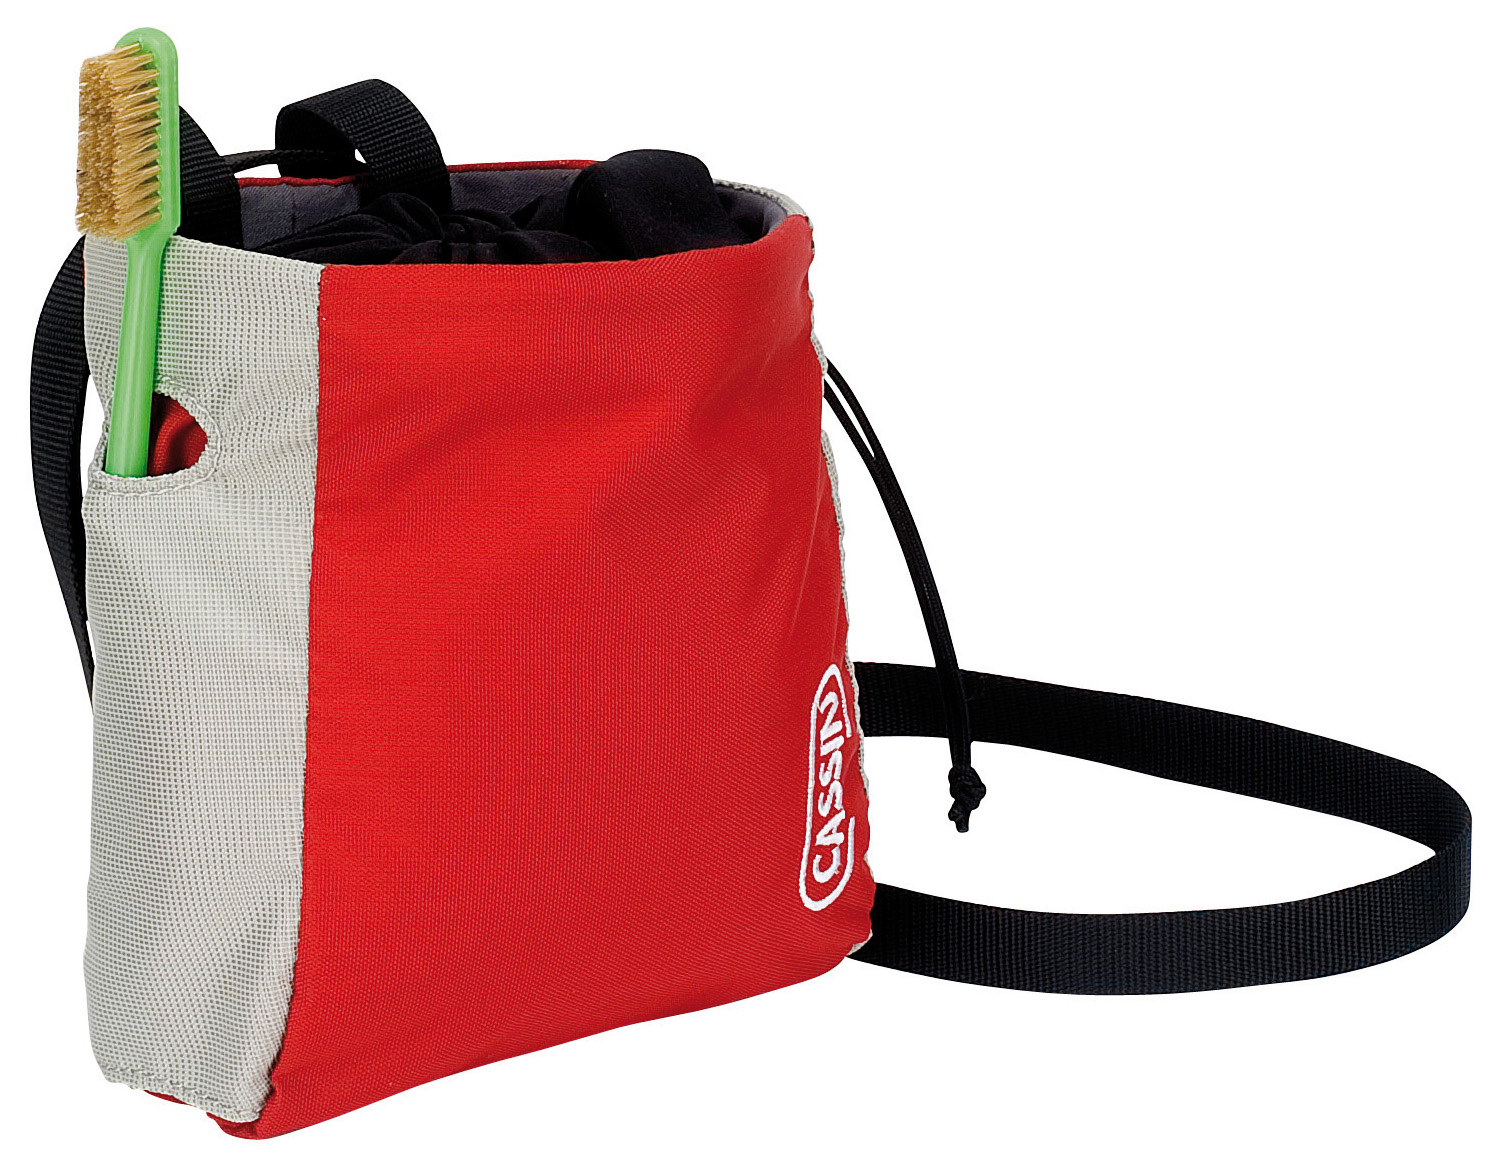 CAMP Cassin Okone Chalk Bag